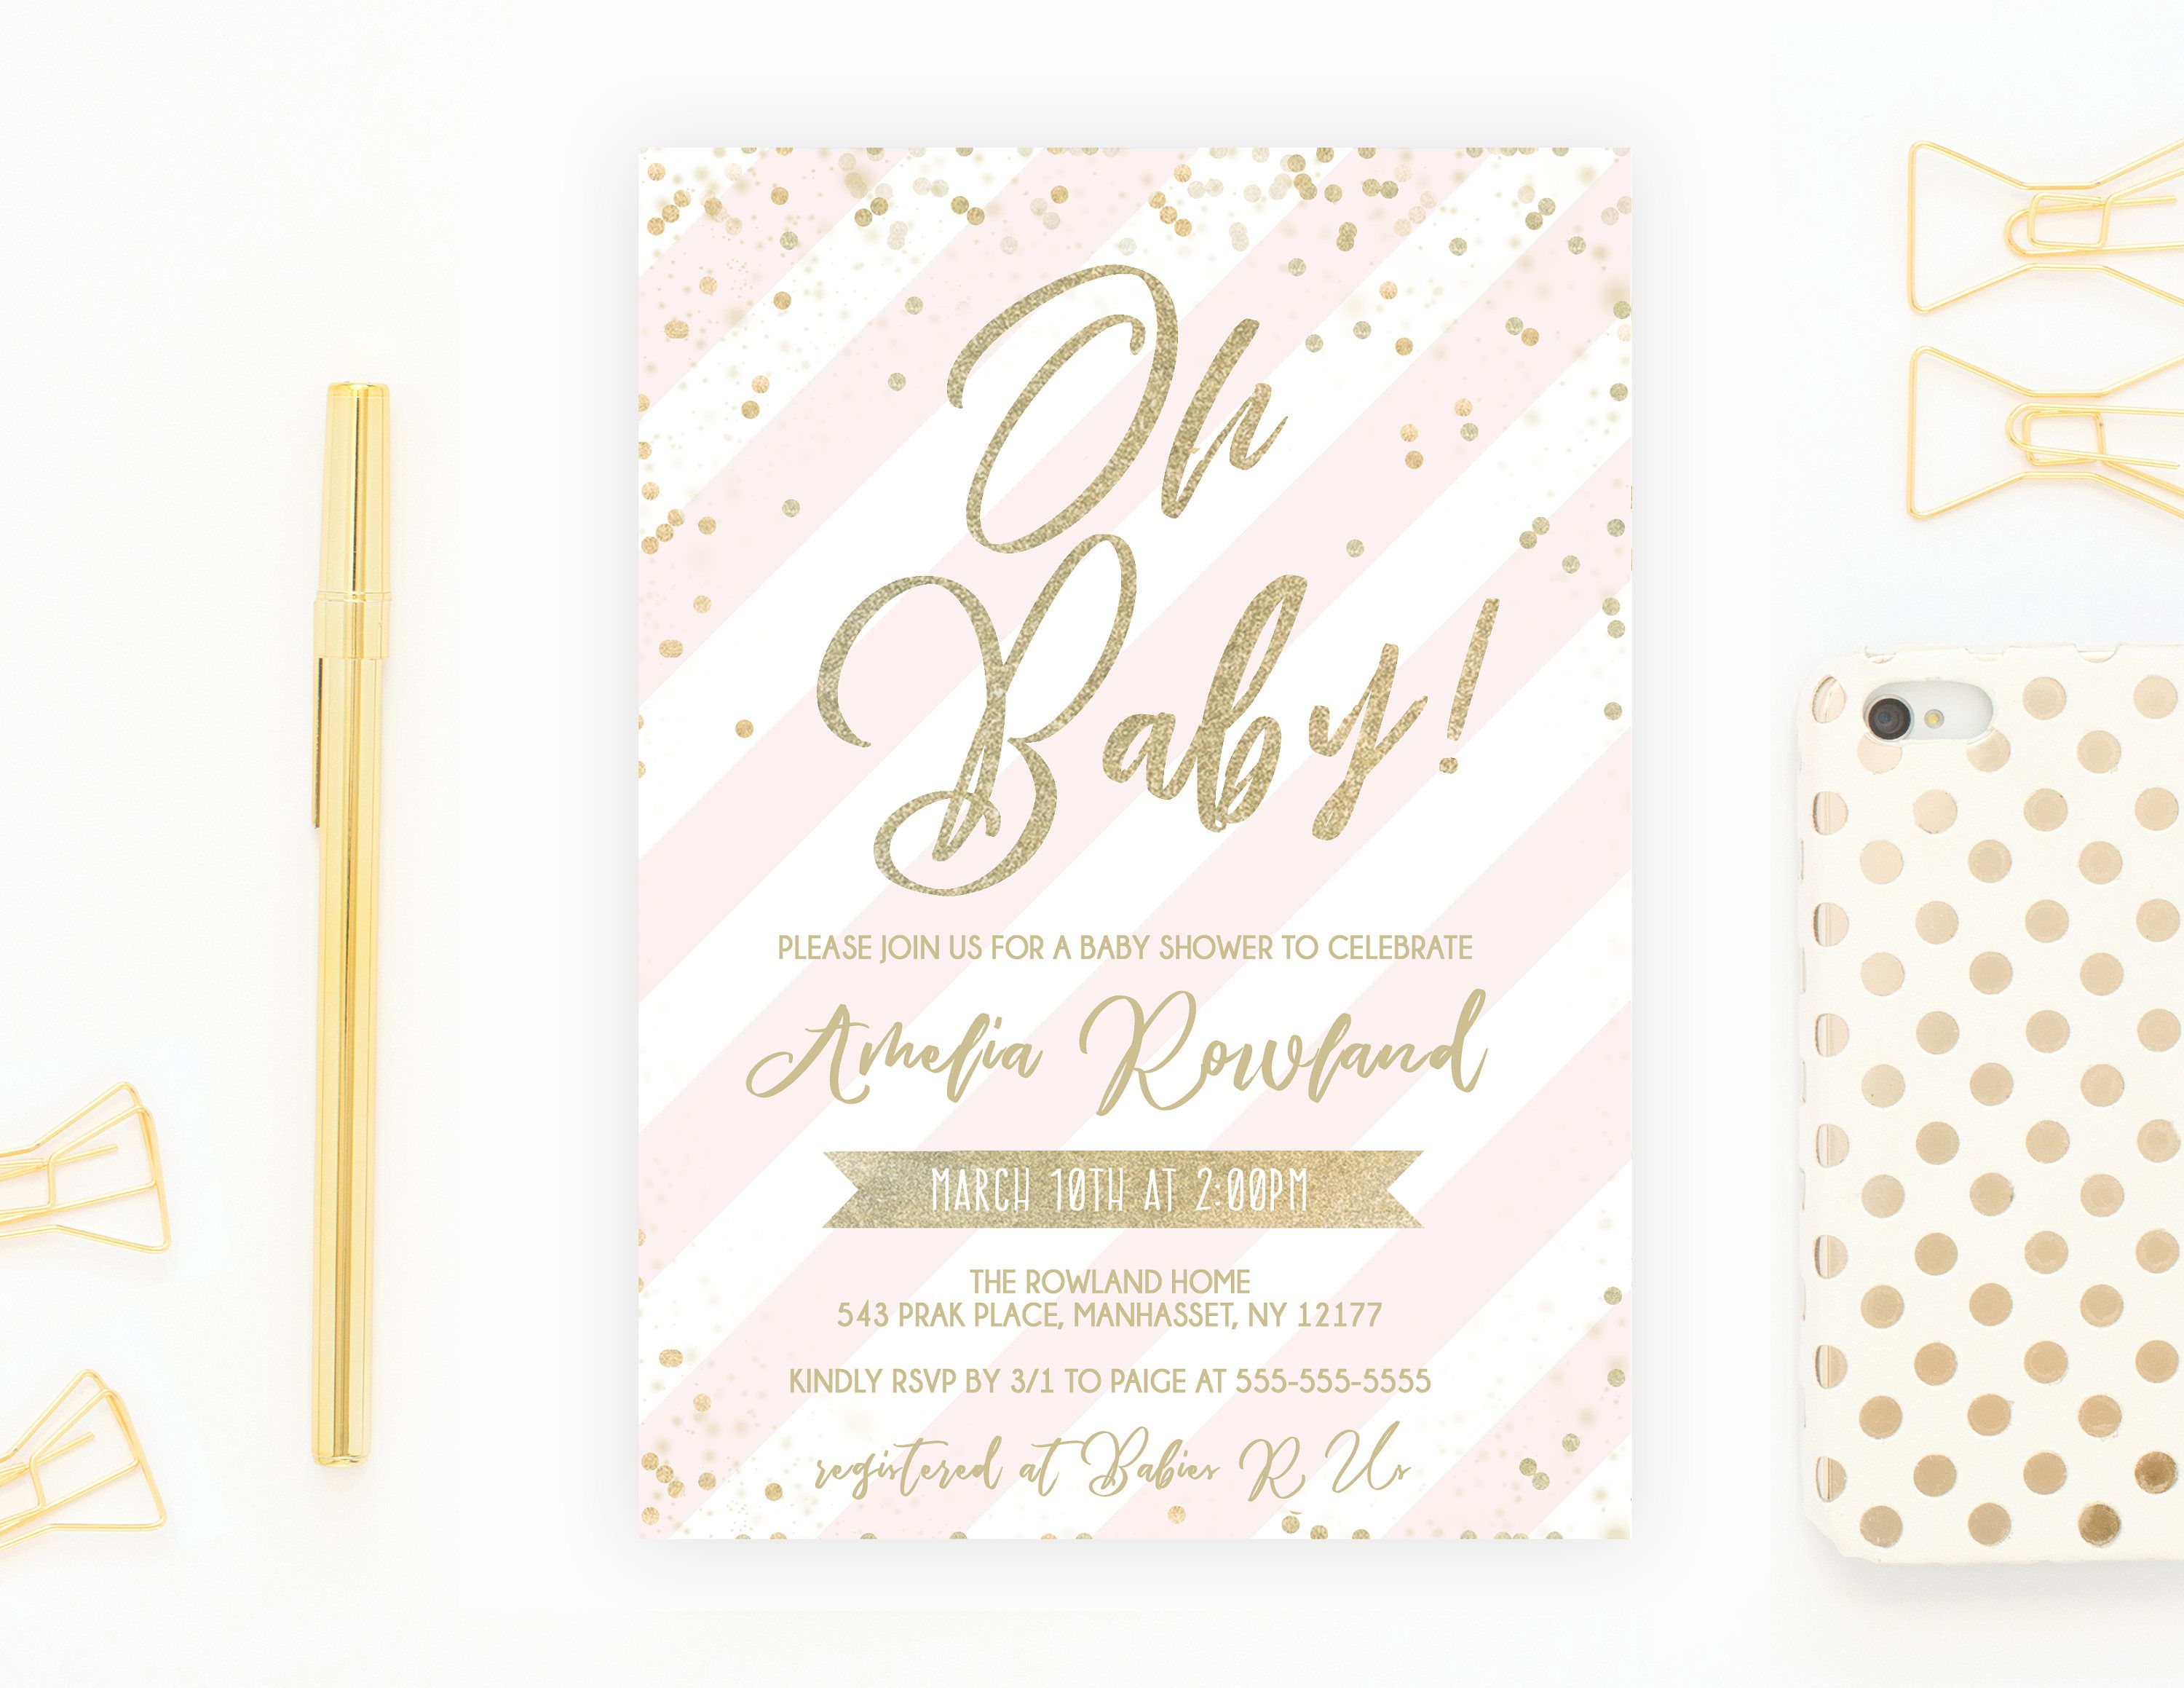 velveteen invitations shower and sweet fun cuddly baby cute bunny rabbit are pin